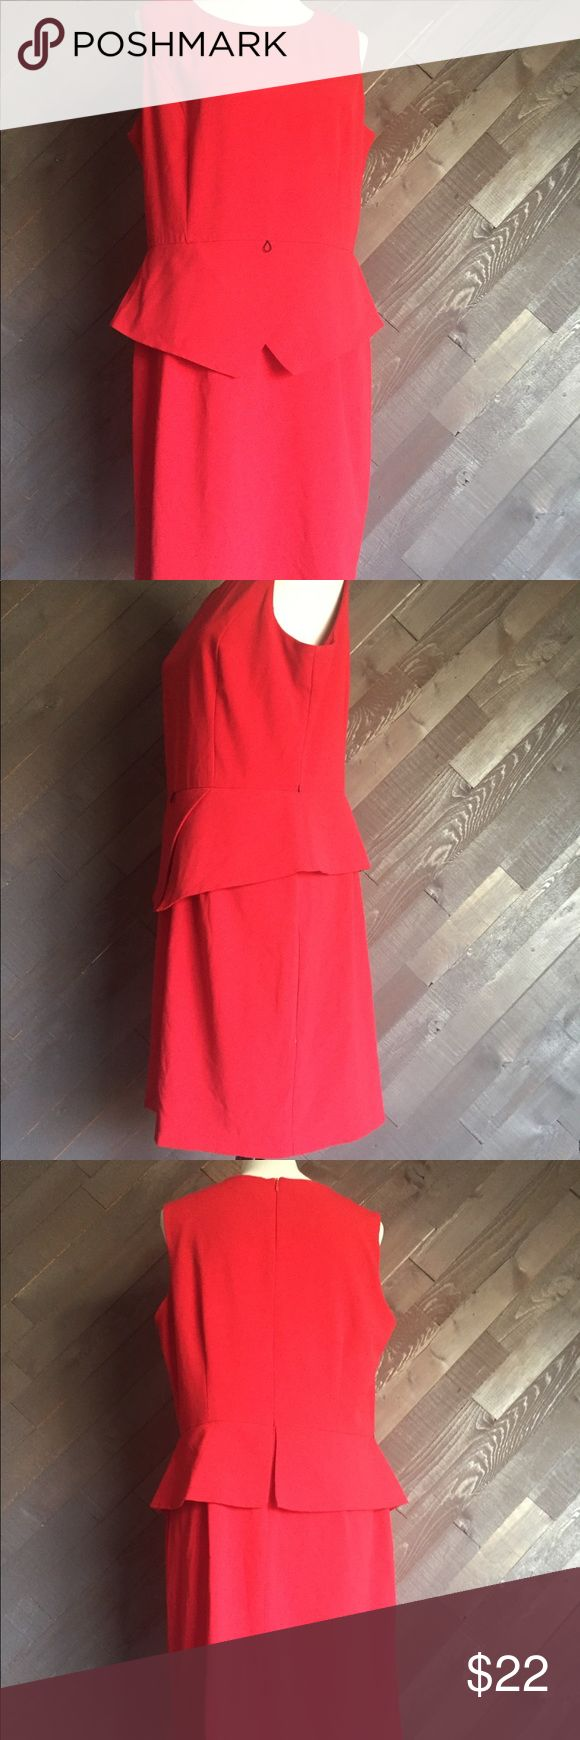 Emma & Michelle Red Peplum Dress 🌹🌹🌹 Emma & Michelle Red Peplum Dress In excellent used condition, it's missing the detachable belt. Measures 37 Long & 20 from arm pit to arm pit emma & michelle Dresses Mini